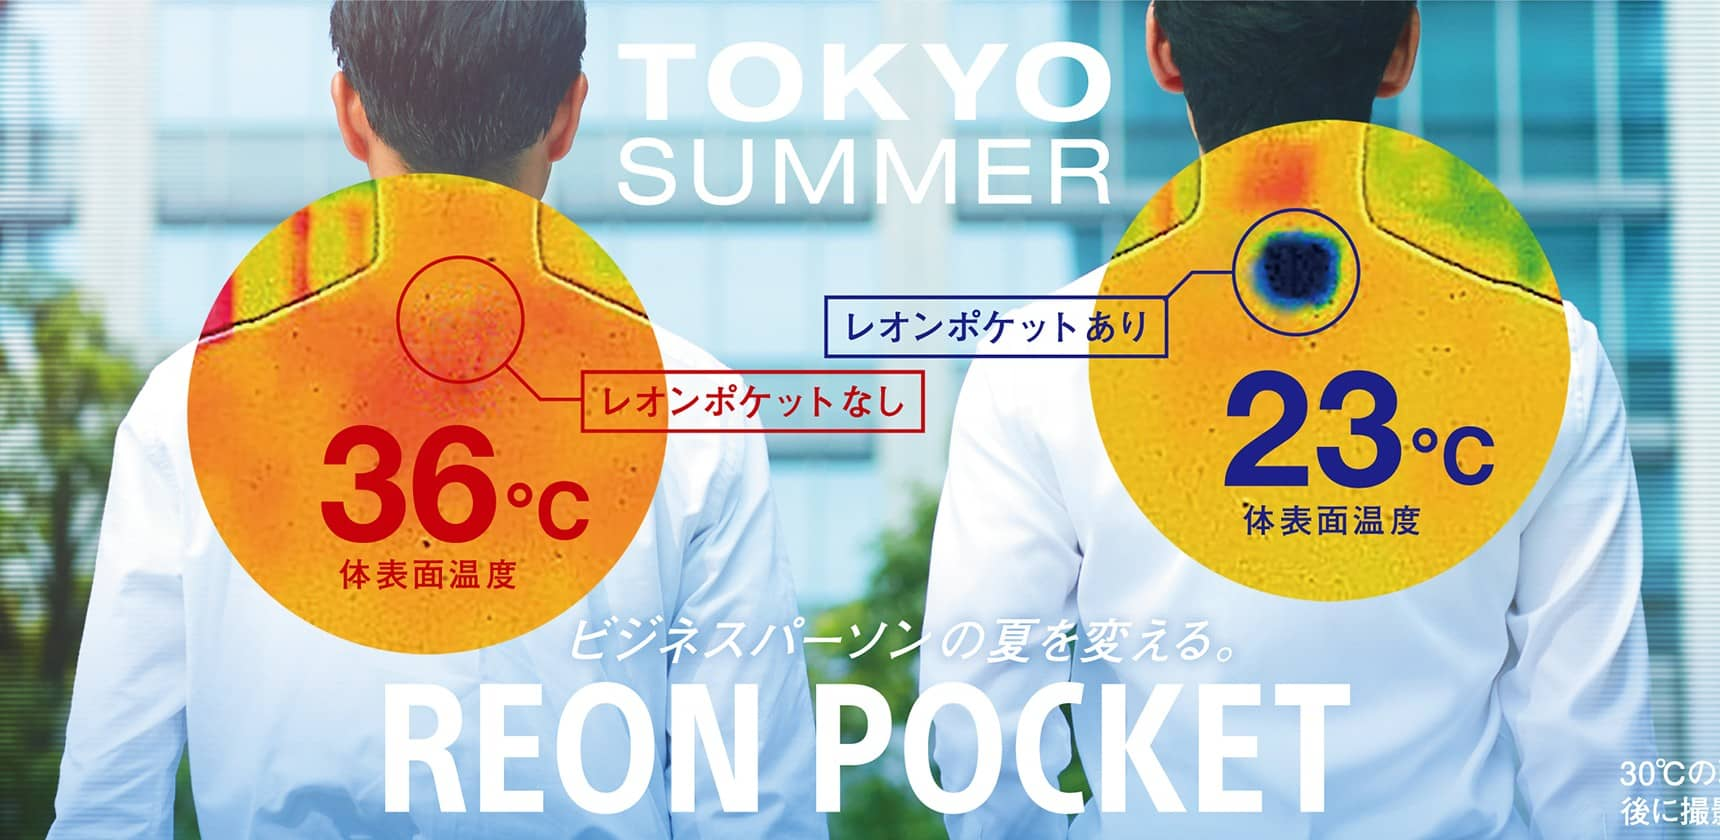 sony reon pocket 1